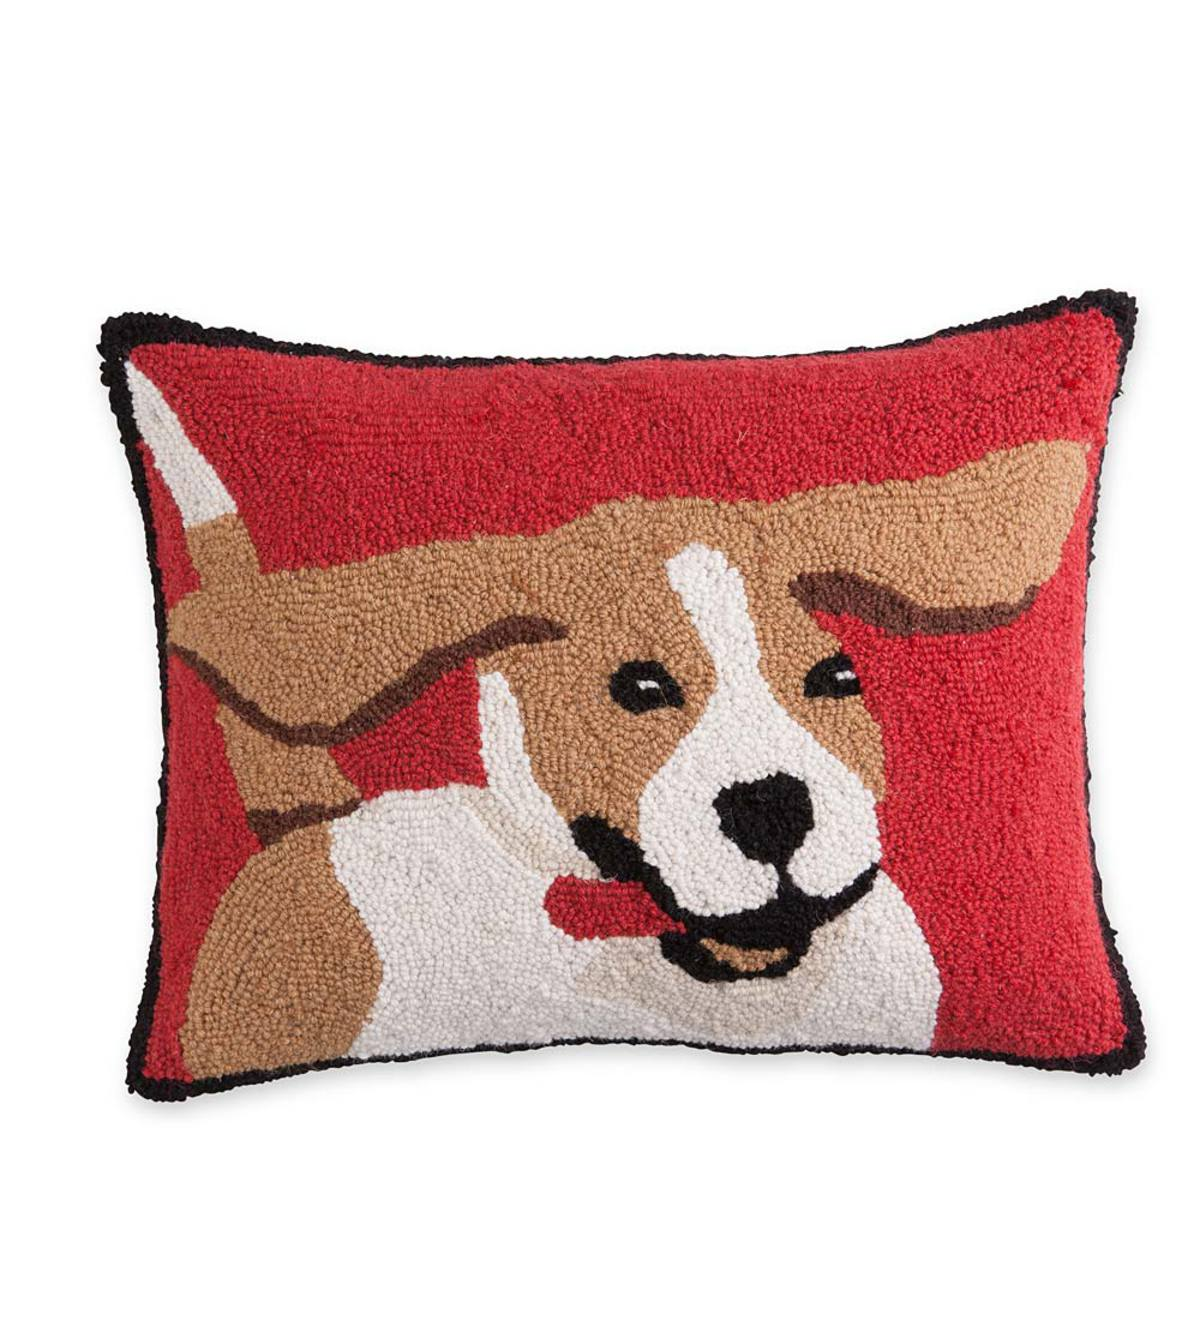 Hooked Wool Beagle Throw Pillow | Bedroom | Shop by Room | PlowHearth